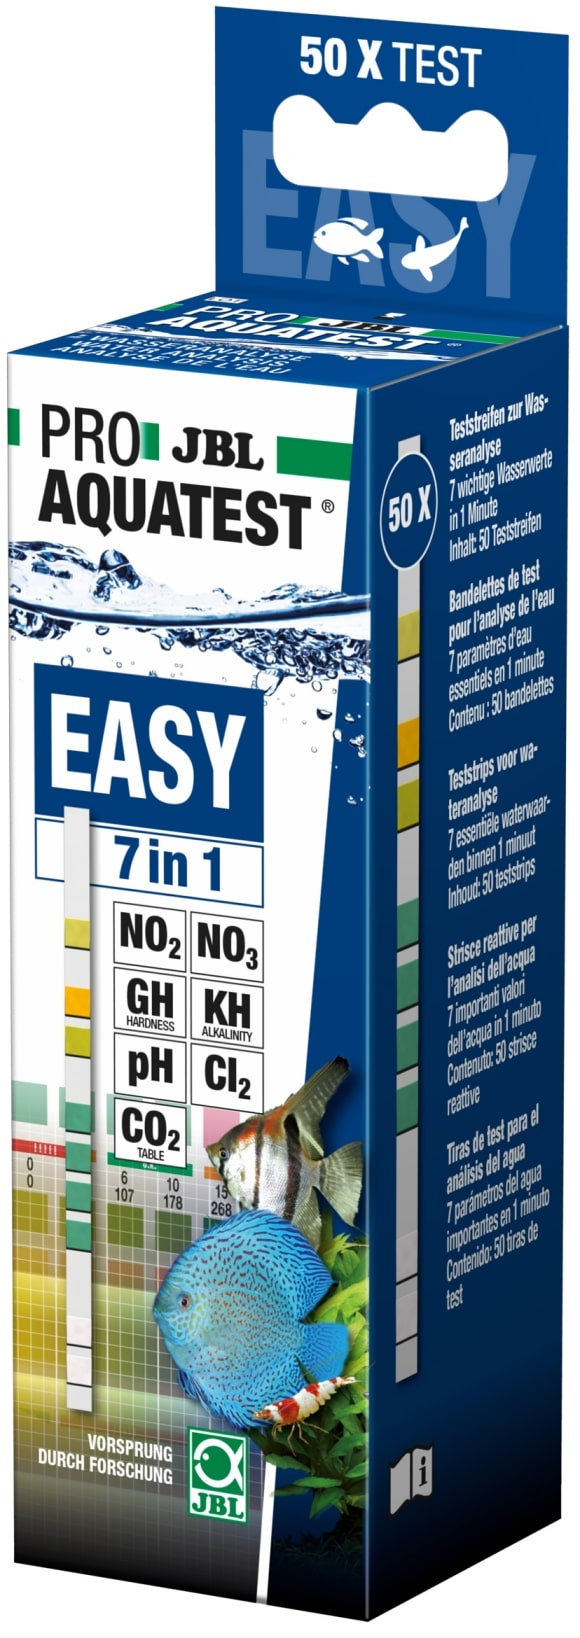 JBL ProAquaTest Easy 7 en 1 kit 50 bandelettes d\'analyse pH, NO2, NO3, GH, KH, Chlore et CO2